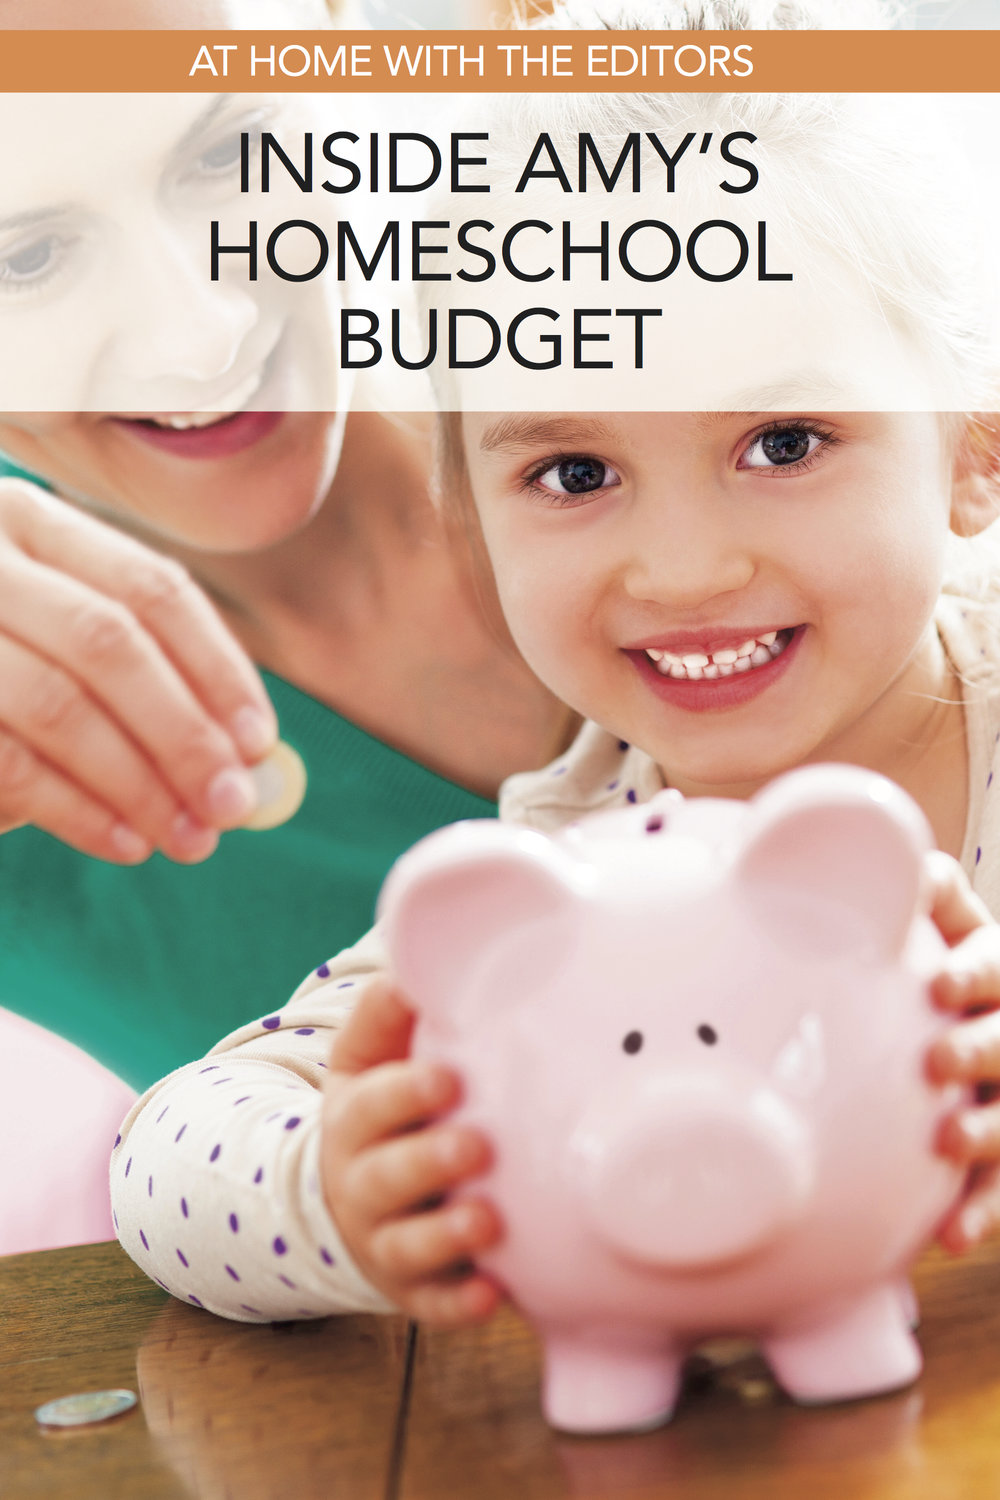 Really useful actual dollars and cents breakdown of one homeschooler's budget for classes, curriculum, supplies, etc. #homeschool